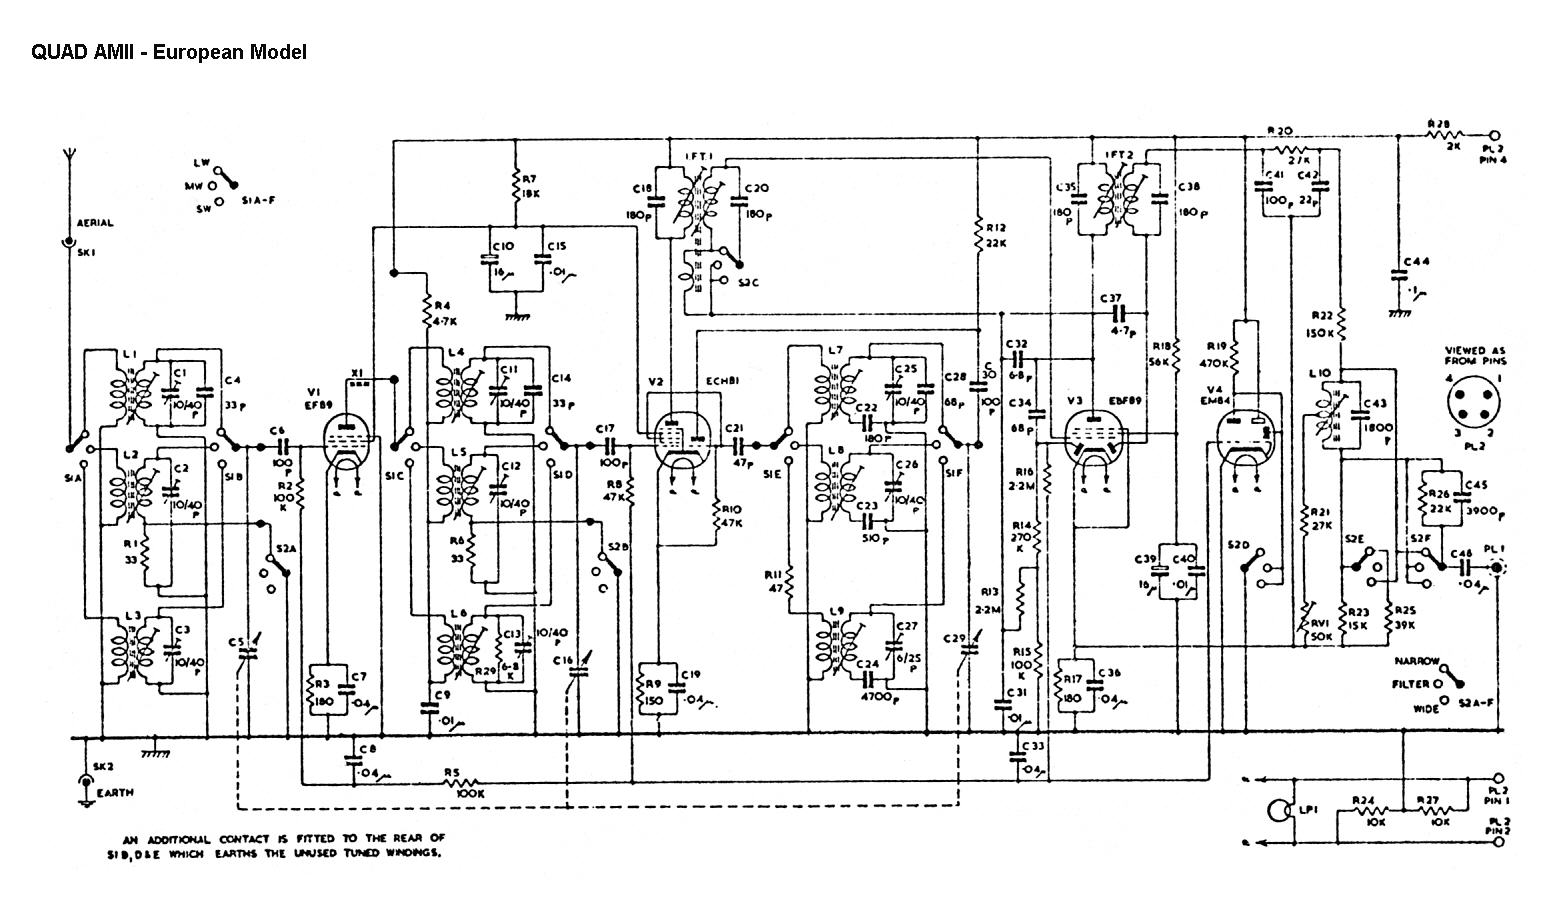 Complete Circuit Diagram - European Model ...